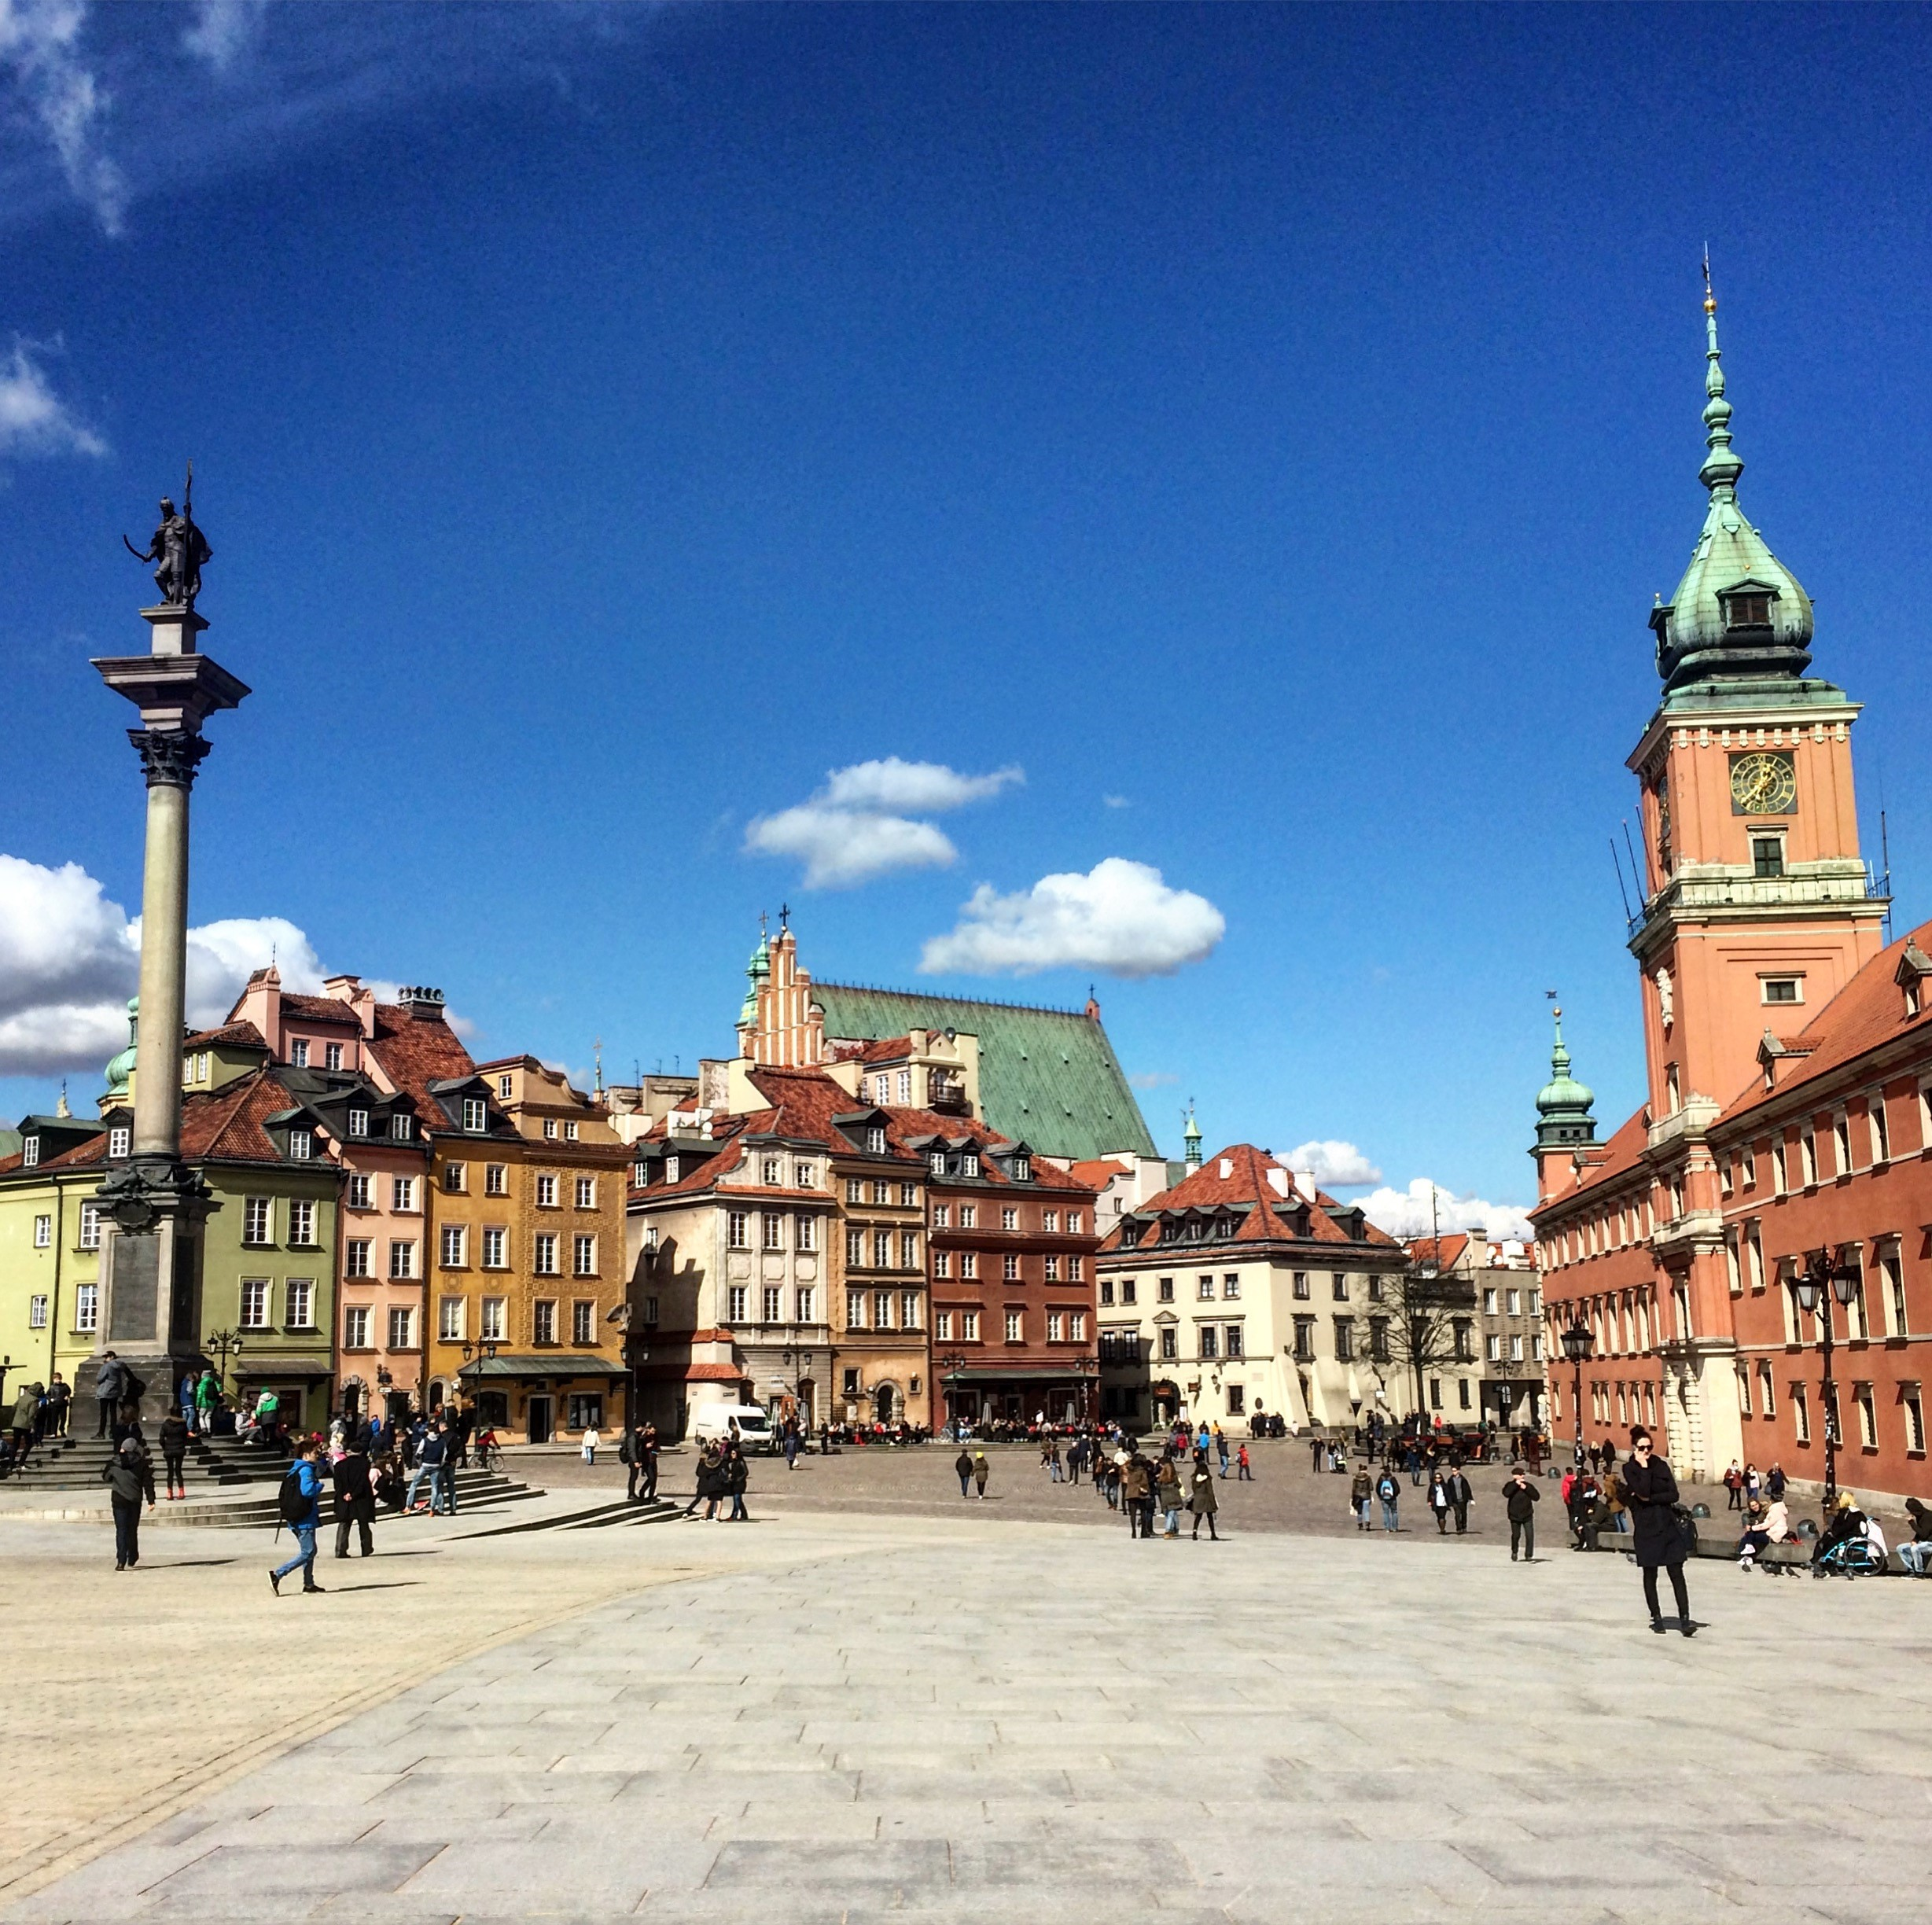 11 reasons why Warsaw is cooler than Berlin